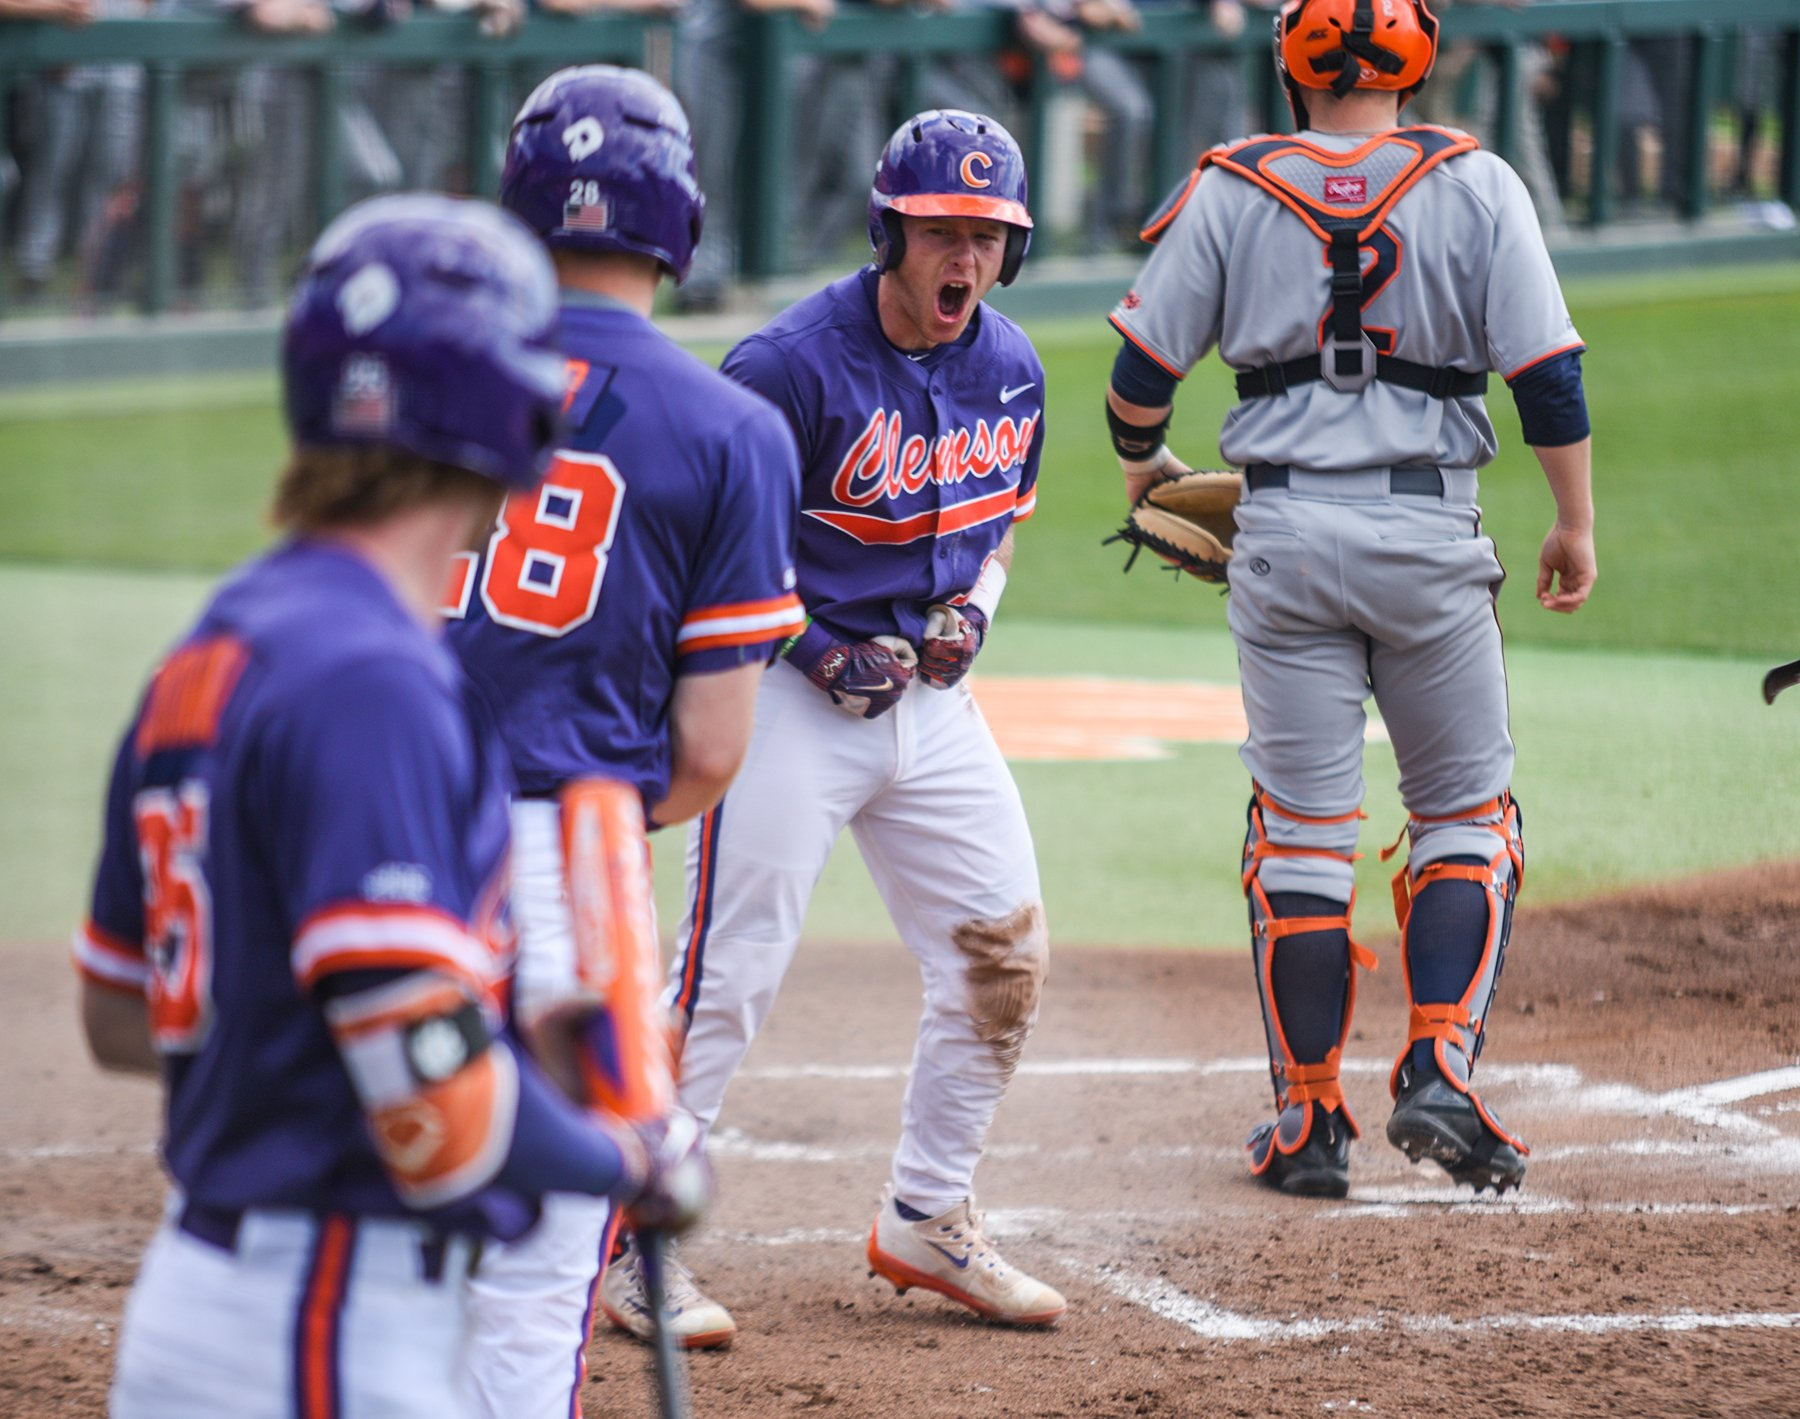 See #Clemson's 7-6 win over No. 11 Virginia in pictures by @bradleyamoore_ --->  https://t.co/muFvRd4dc3 https://t.co/DYRe01UW5R